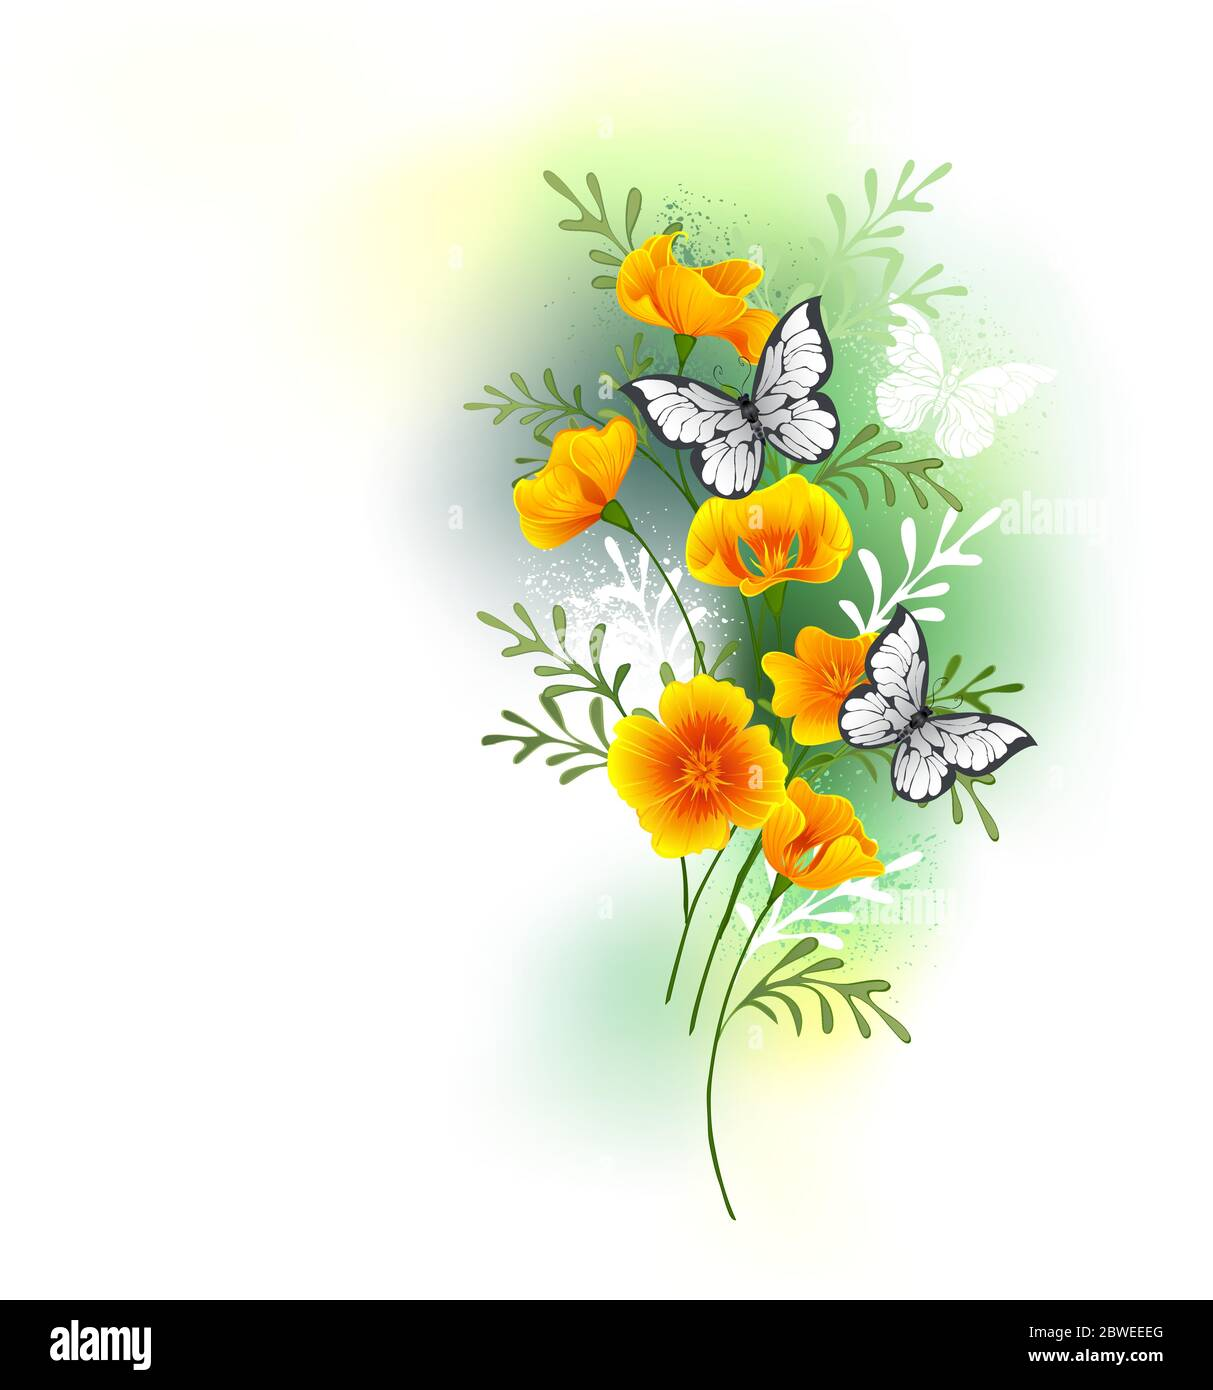 Artistically painted, small bouquet of orange Caliphony poppy flowers with white butterflies sitting on them against white background stained with gre Stock Vector